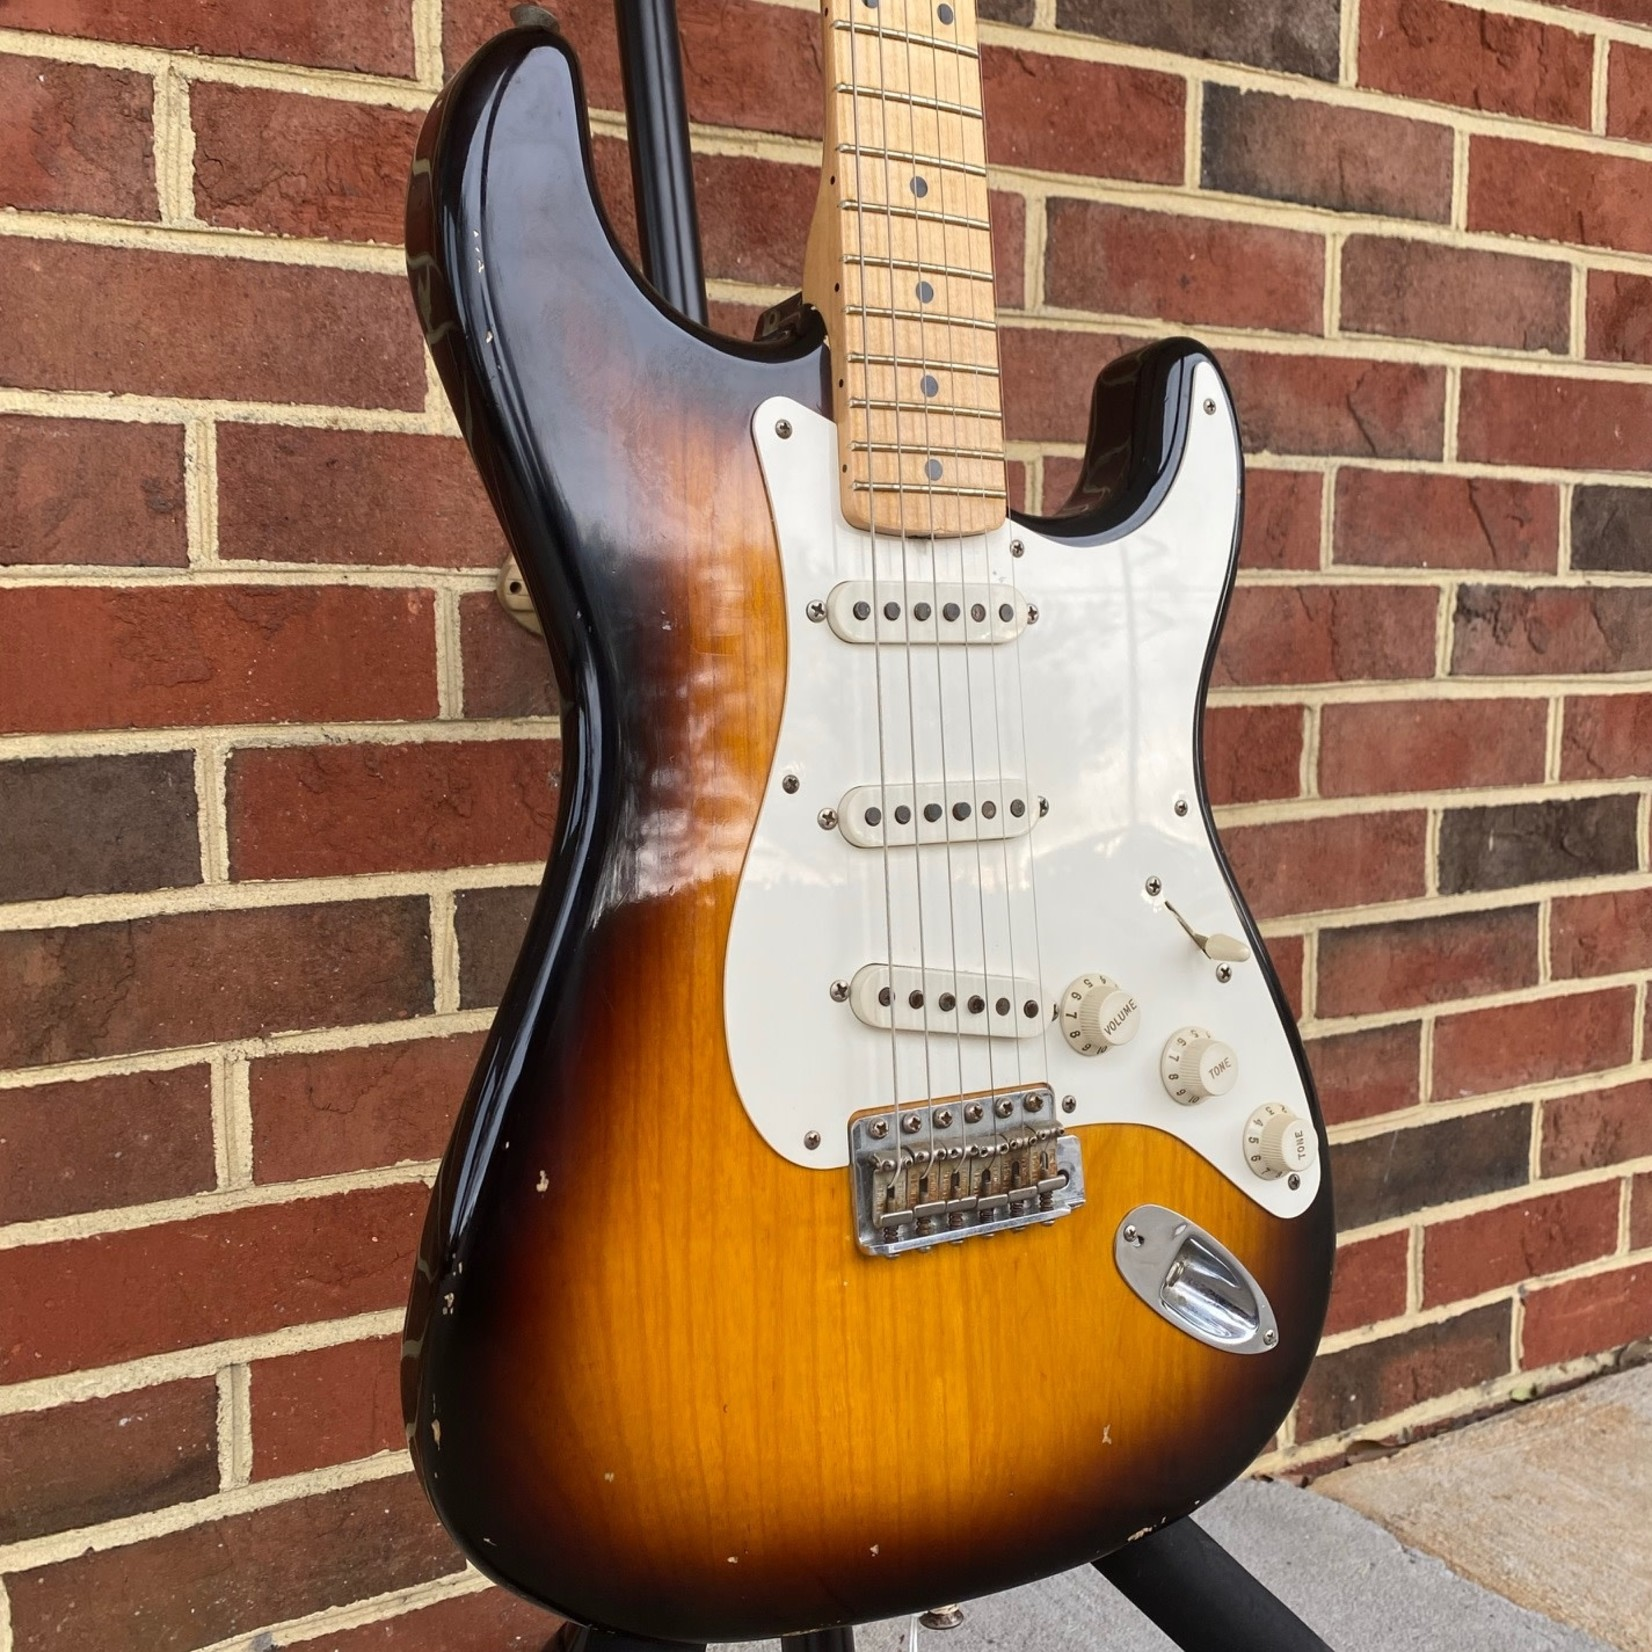 Fender Custom Shop Limited Edition Wildwood 10 50's Stratocaster Relic, Hardshell Case (USED)